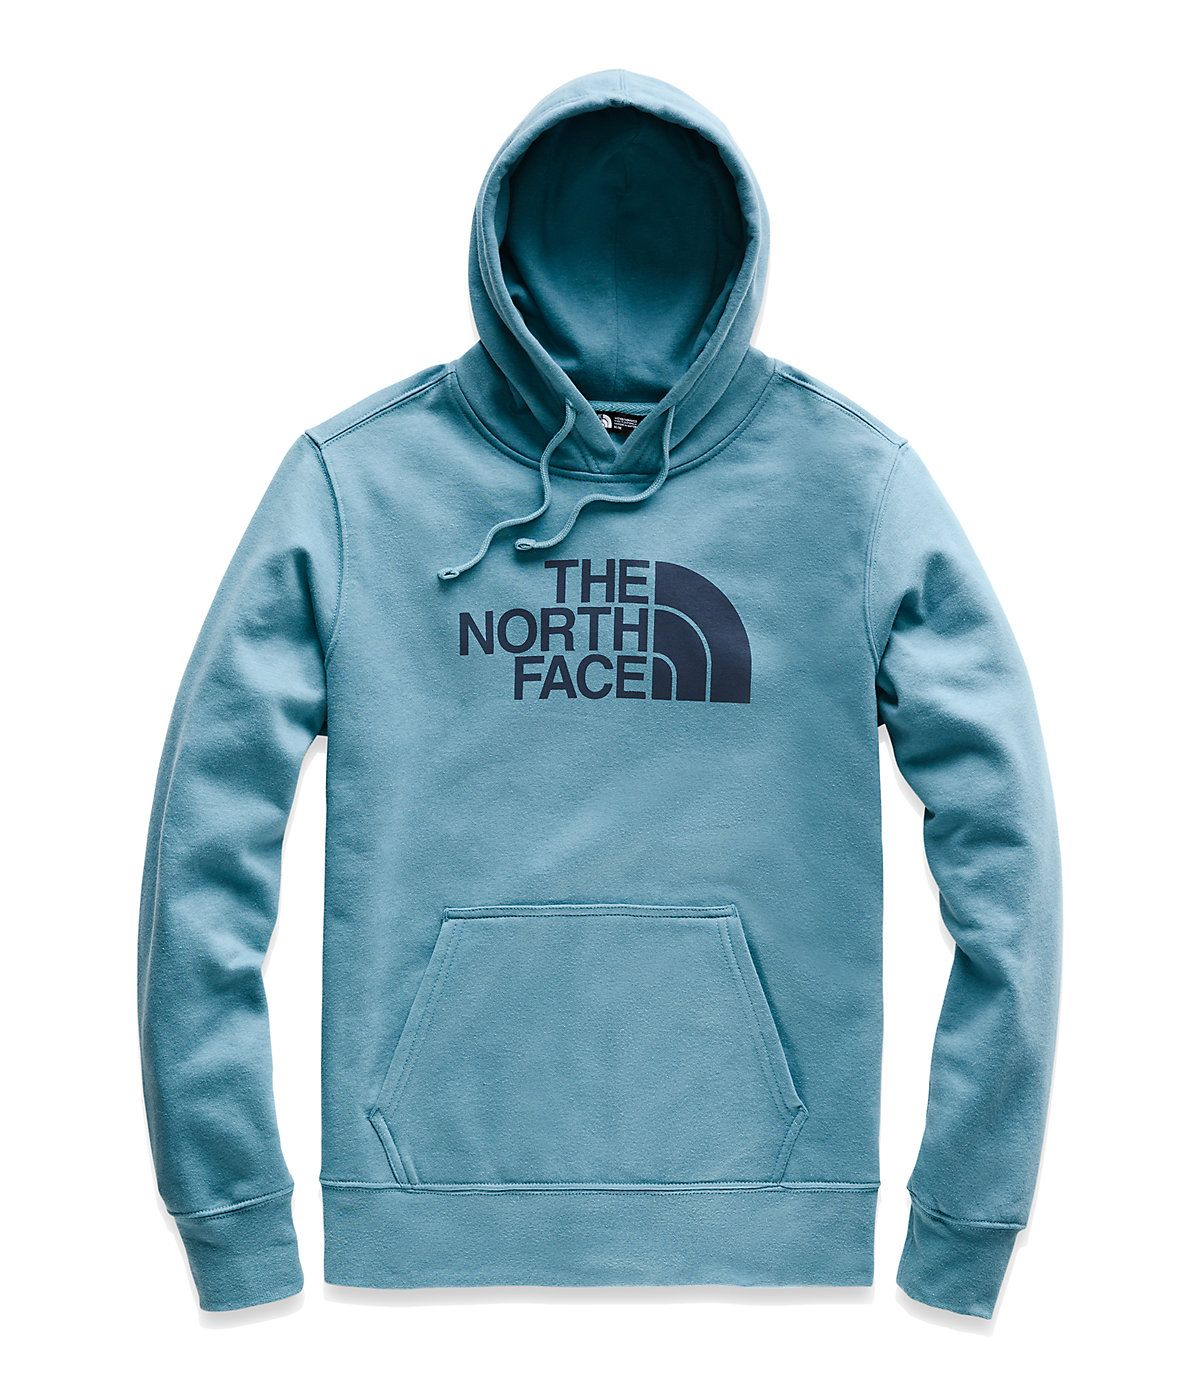 Men S Half Dome Pullover Hoodie The North Face Hoodies Pullover Hoodie Zumiez Outfits [ 1396 x 1200 Pixel ]